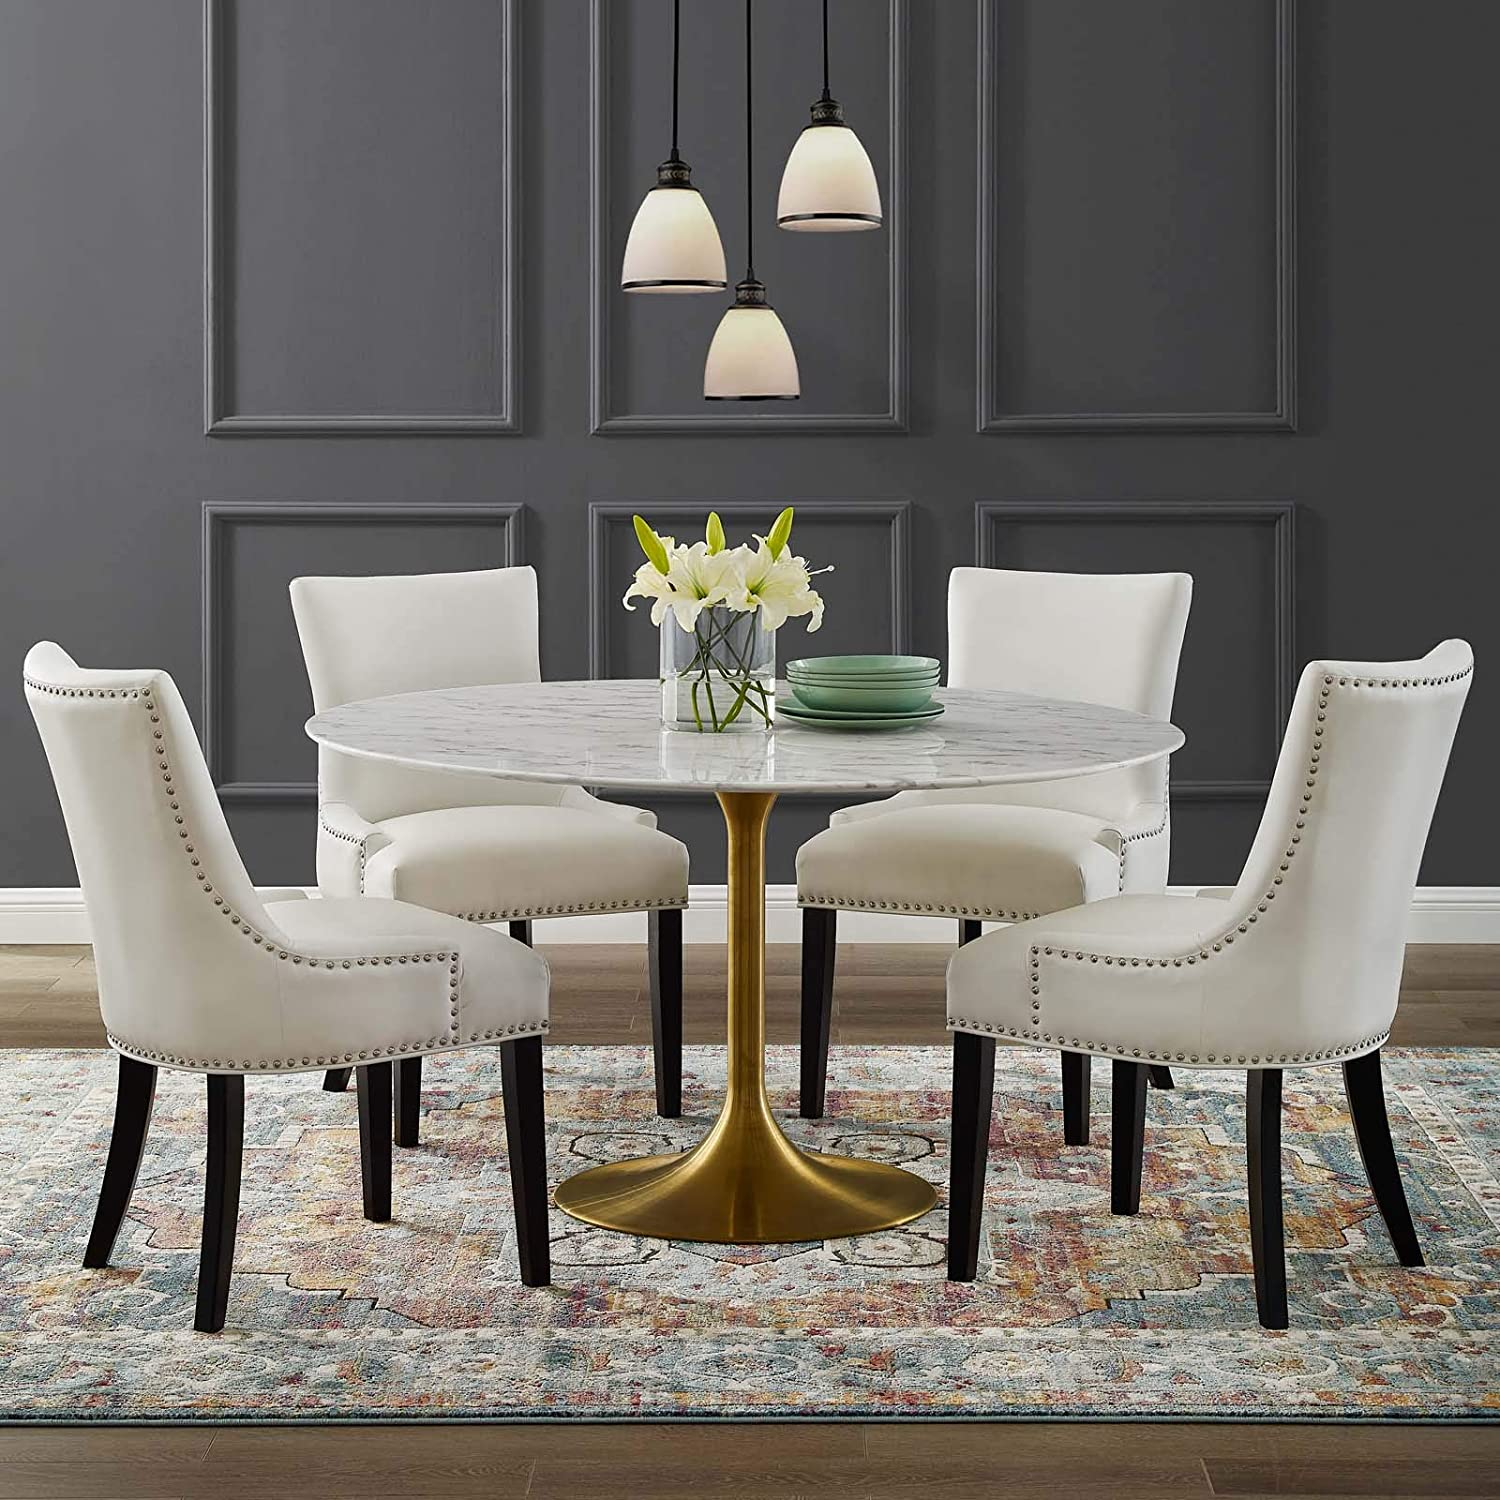 Amazon Com Modway Lippa 54 Mid Century Dining Table With Round Artificial Marble Top In Gold White Tables